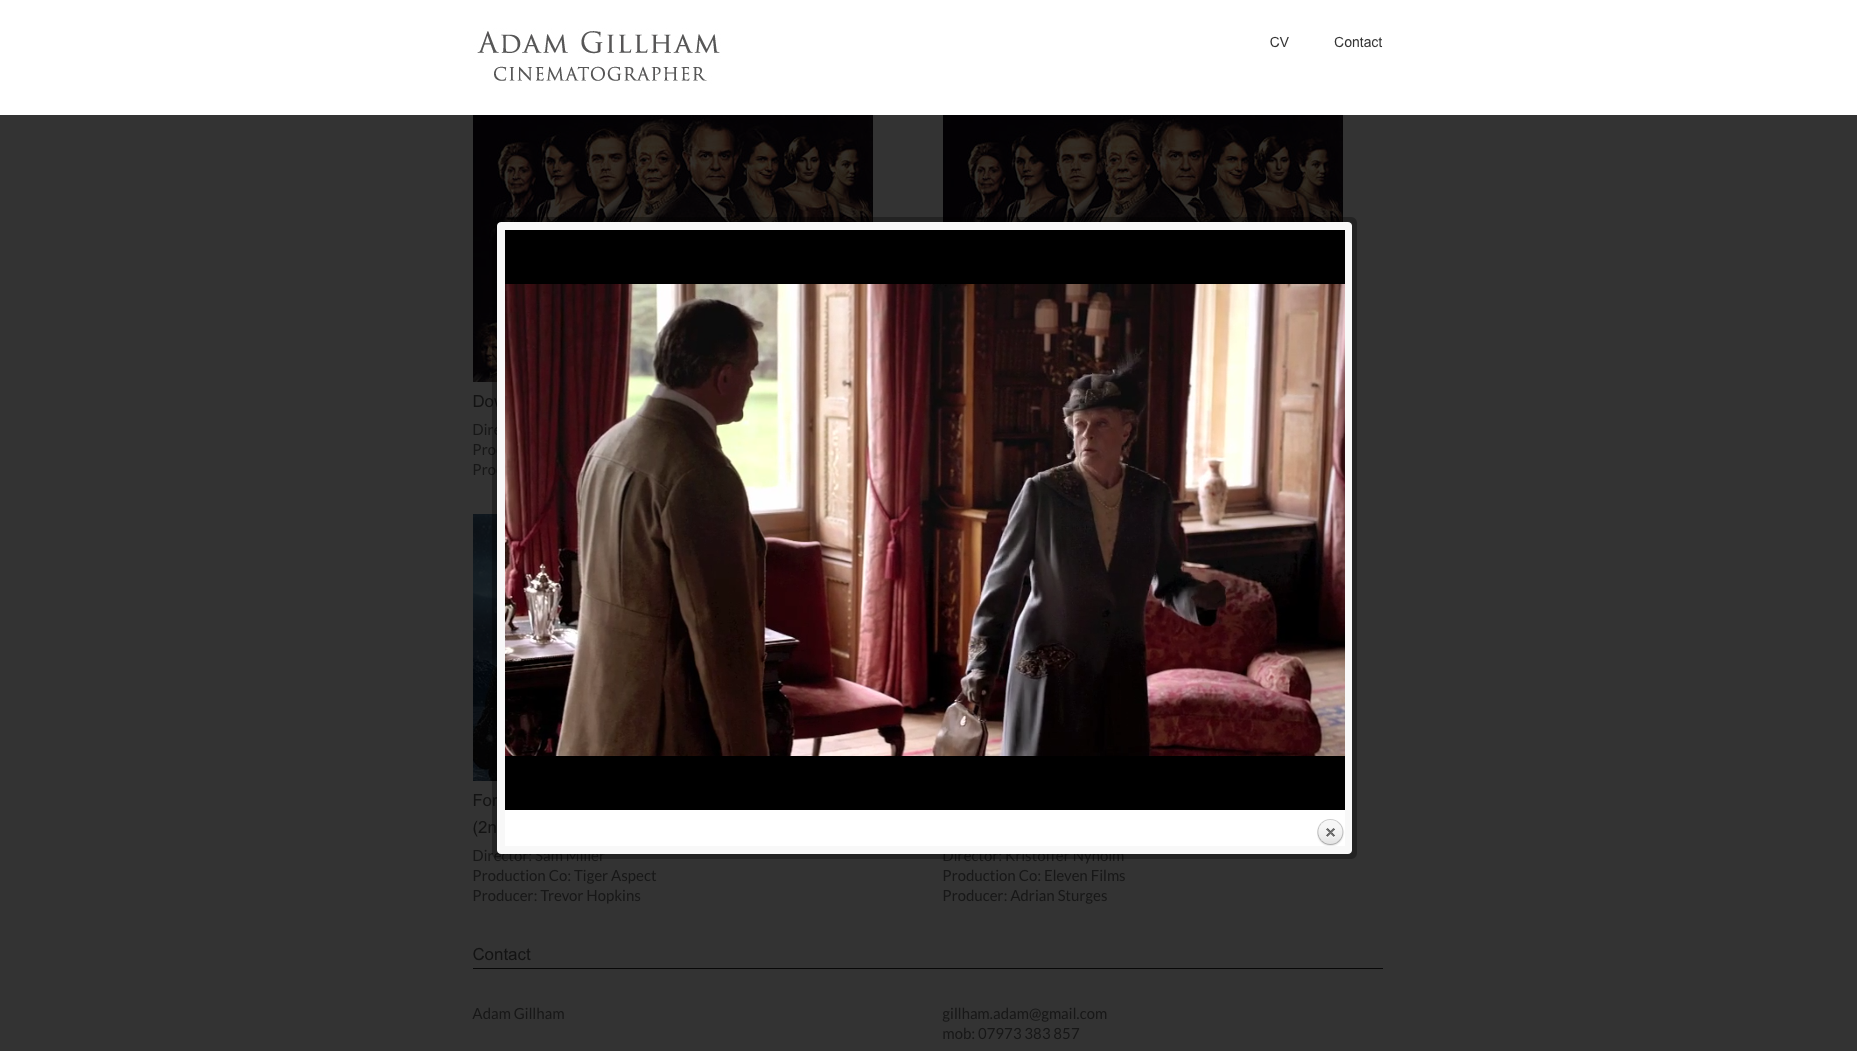 Adam Gillham website design and build by collective digital